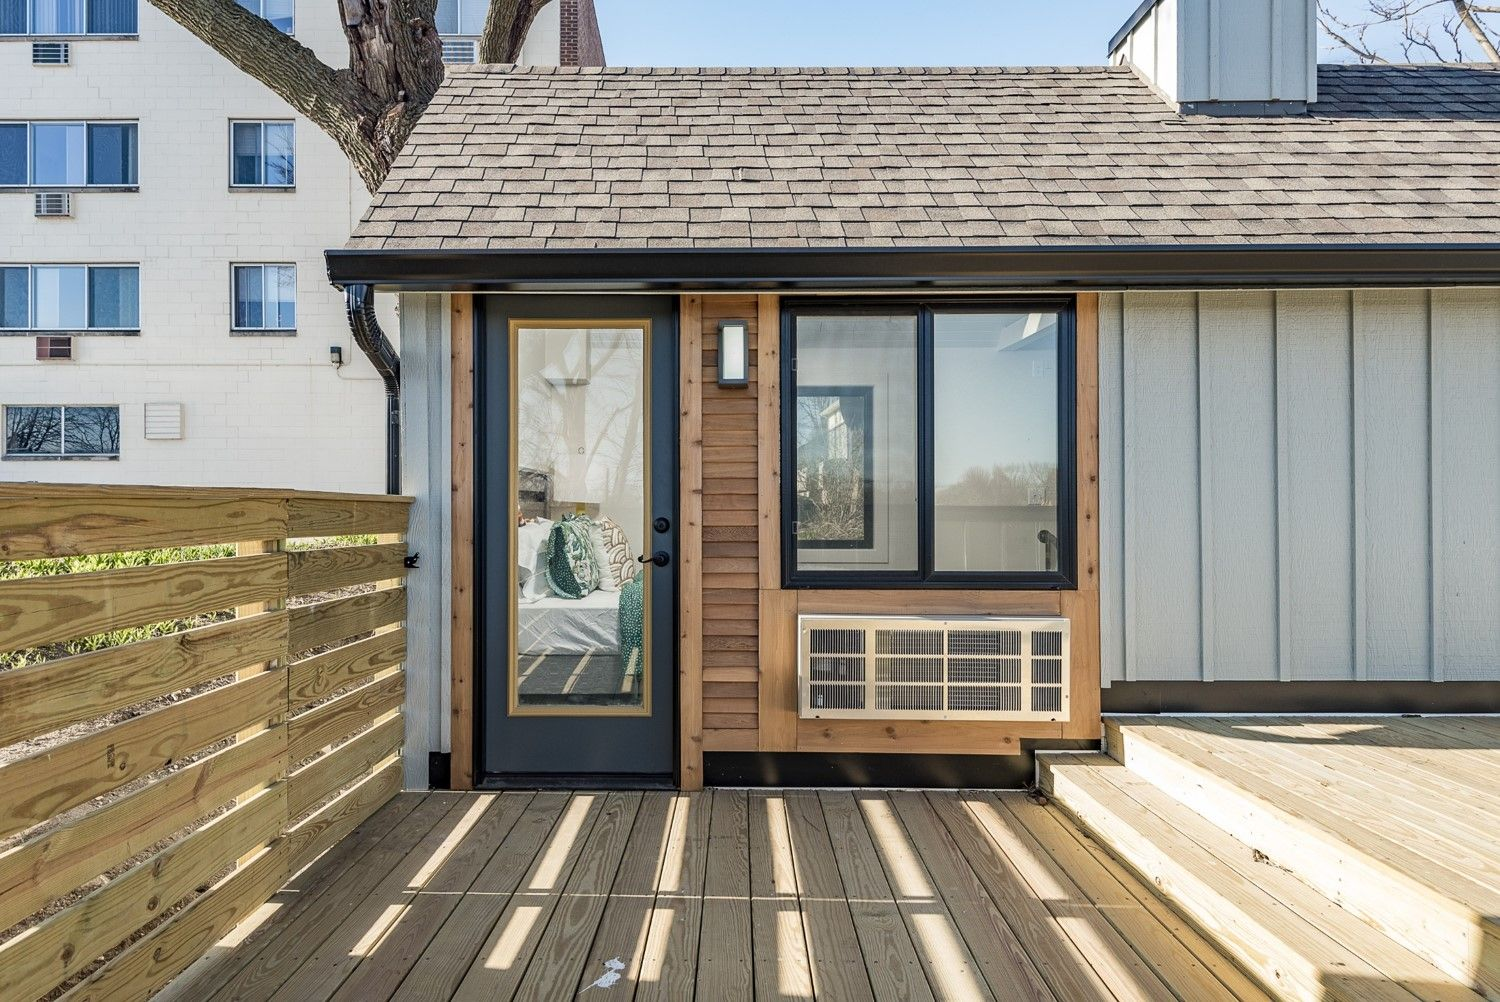 Carriage House 6 Jpg Building Design Tiny House Design Architecture